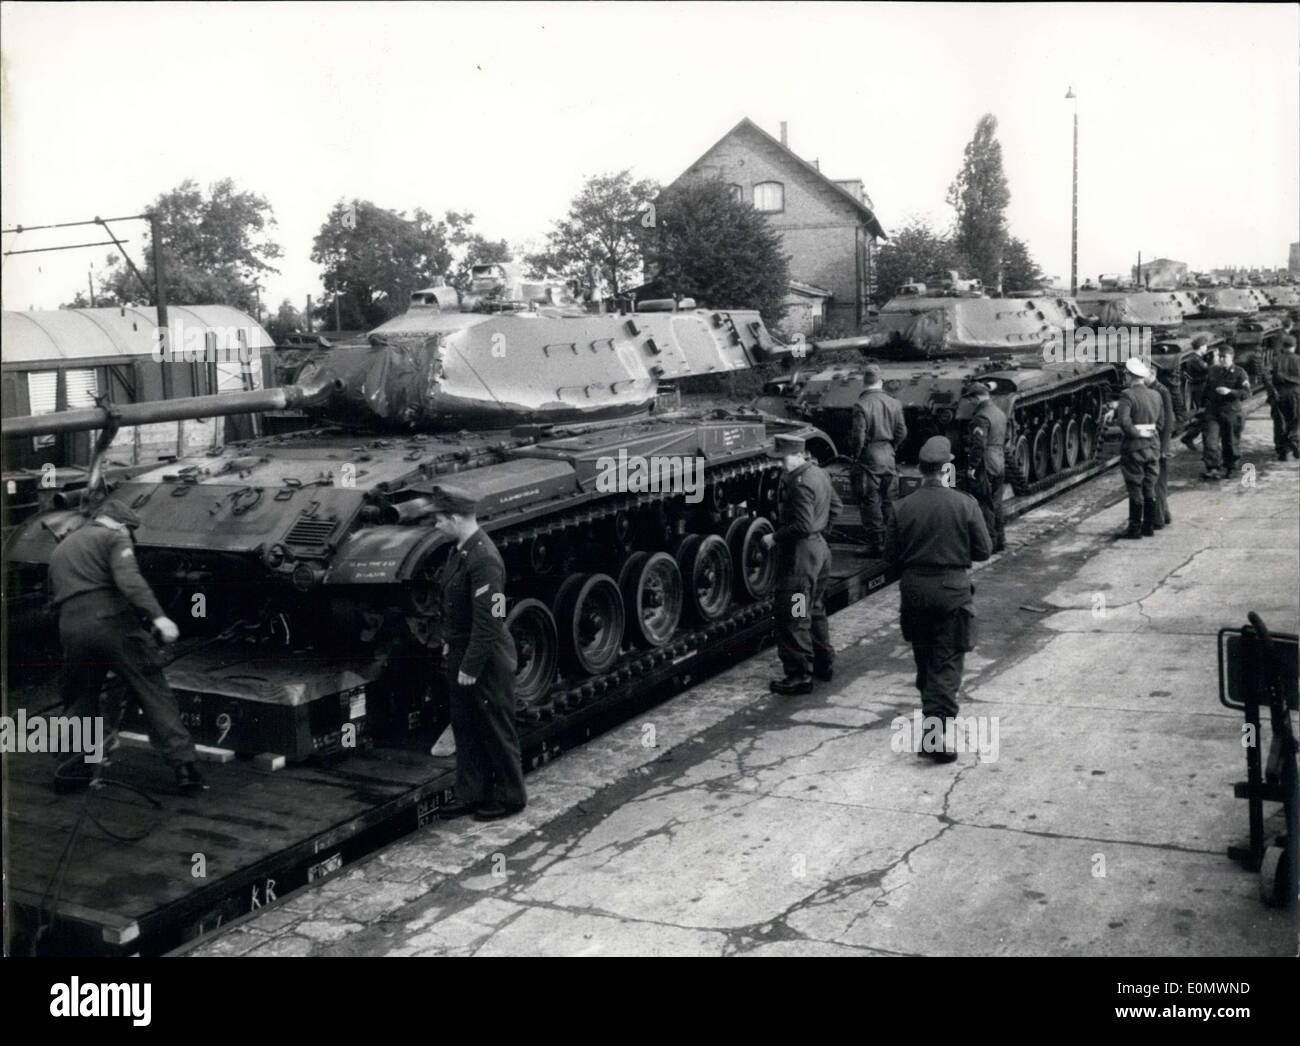 Oct. 01, 1956 - 17 Panzers, Type M 41, arrived in Neum?nster, Germany. They were stationed there. - Stock Image